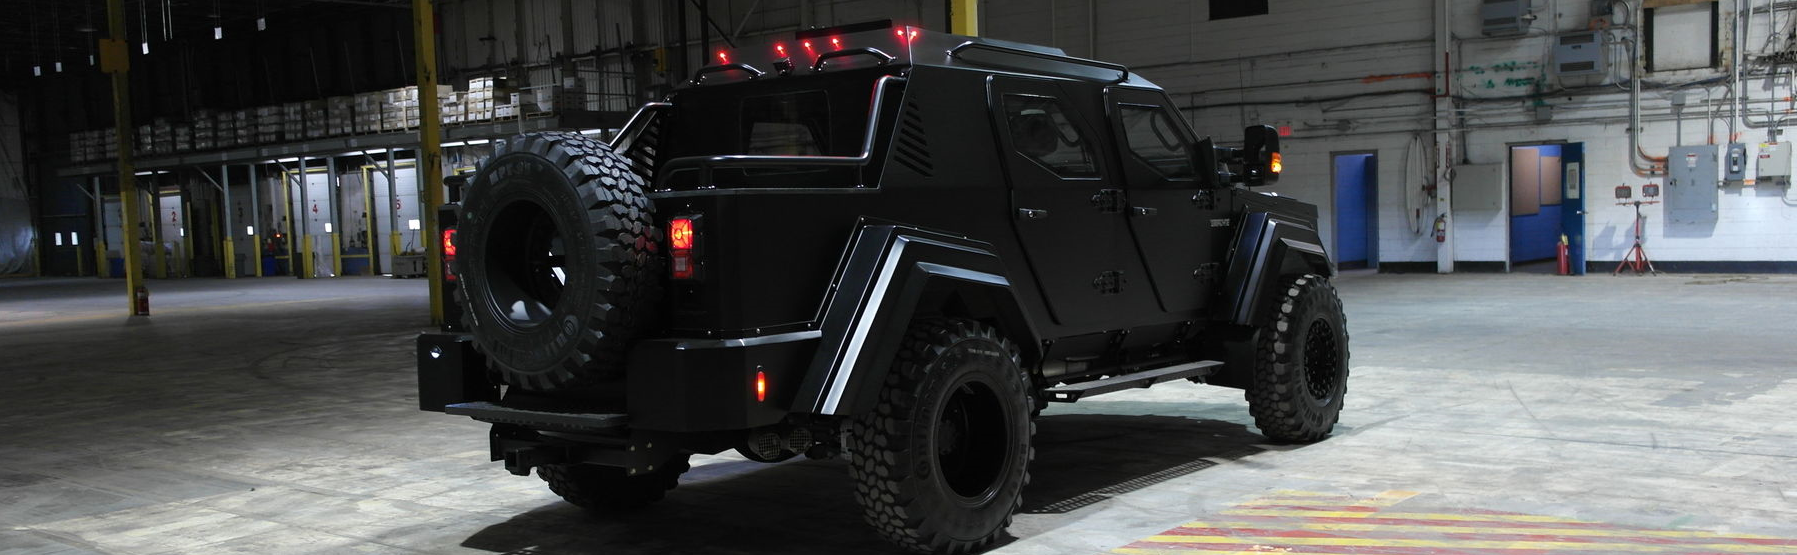 Major League Pitcher A.J. Burnett announced that his fully-armored 2016 Terradyne Gurkha RPV is for sale. Every example of the Gurkha is custom made with no two examples being the same. Burnett's 2016 Terradyne is equipped with shift-on-the-fly 4WD, a vast array of LED light bars and remote controlled spotlights. There is even an external PA speaker to get the attention of any driver that has failed to notice the 20,000 lb vehicle driving up behind them.